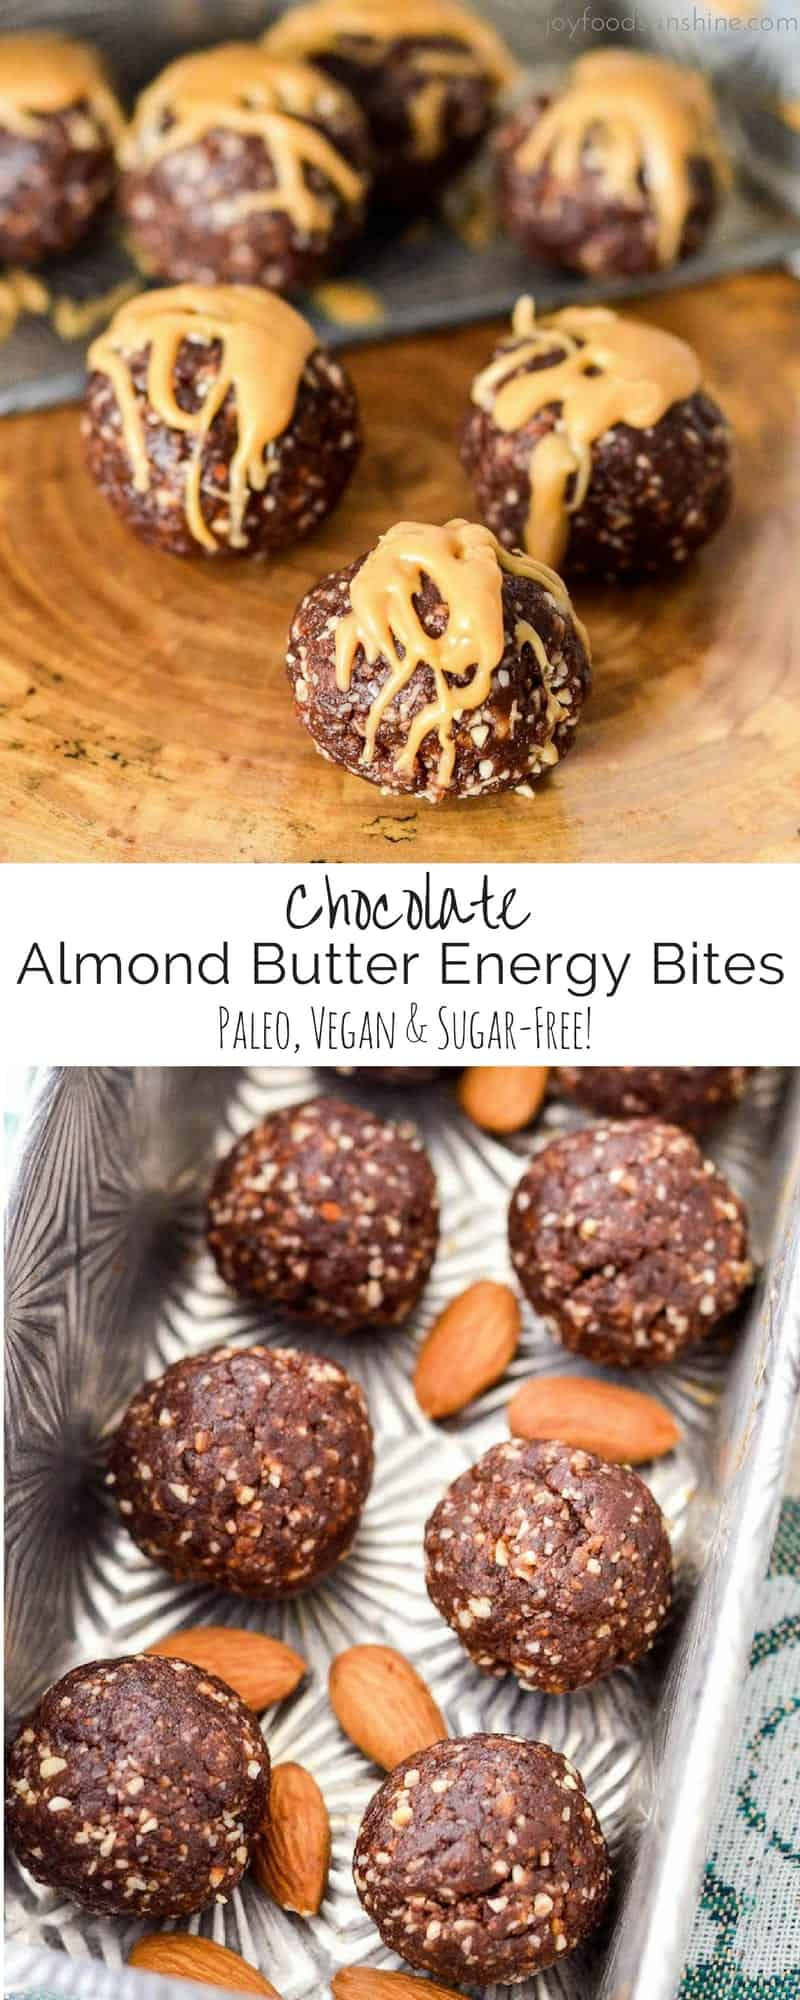 Chocolate Almond Butter Energy Bites! It only takes 7 ingredients and 10 minutes to make this easy & healthy snack recipe! Paleo, gluten-free, dairy-free, date-sweetened & vegan!